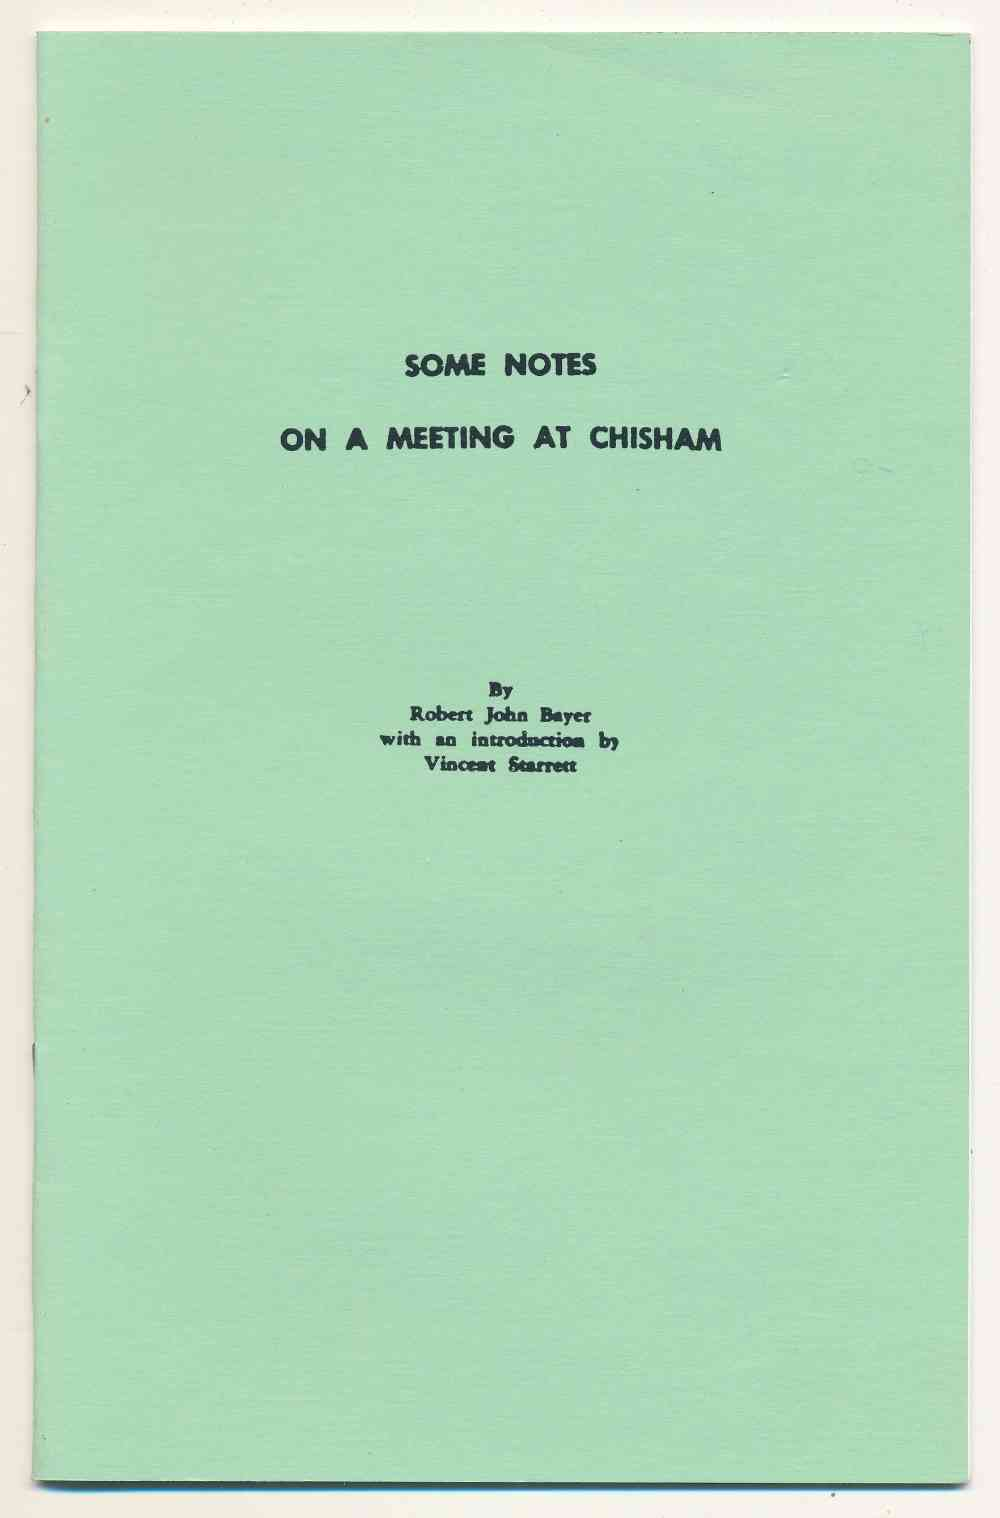 Some notes on a meeting at Chisham